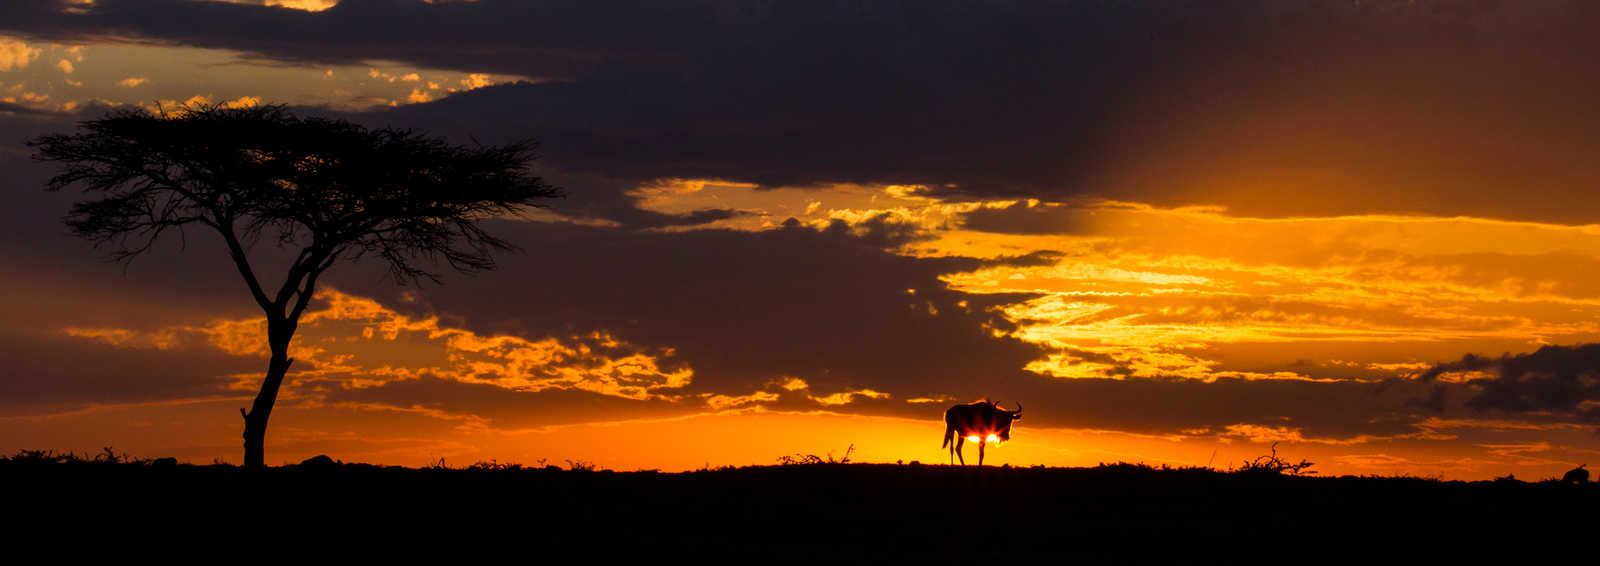 Wildbeest sunset, Masai Mara